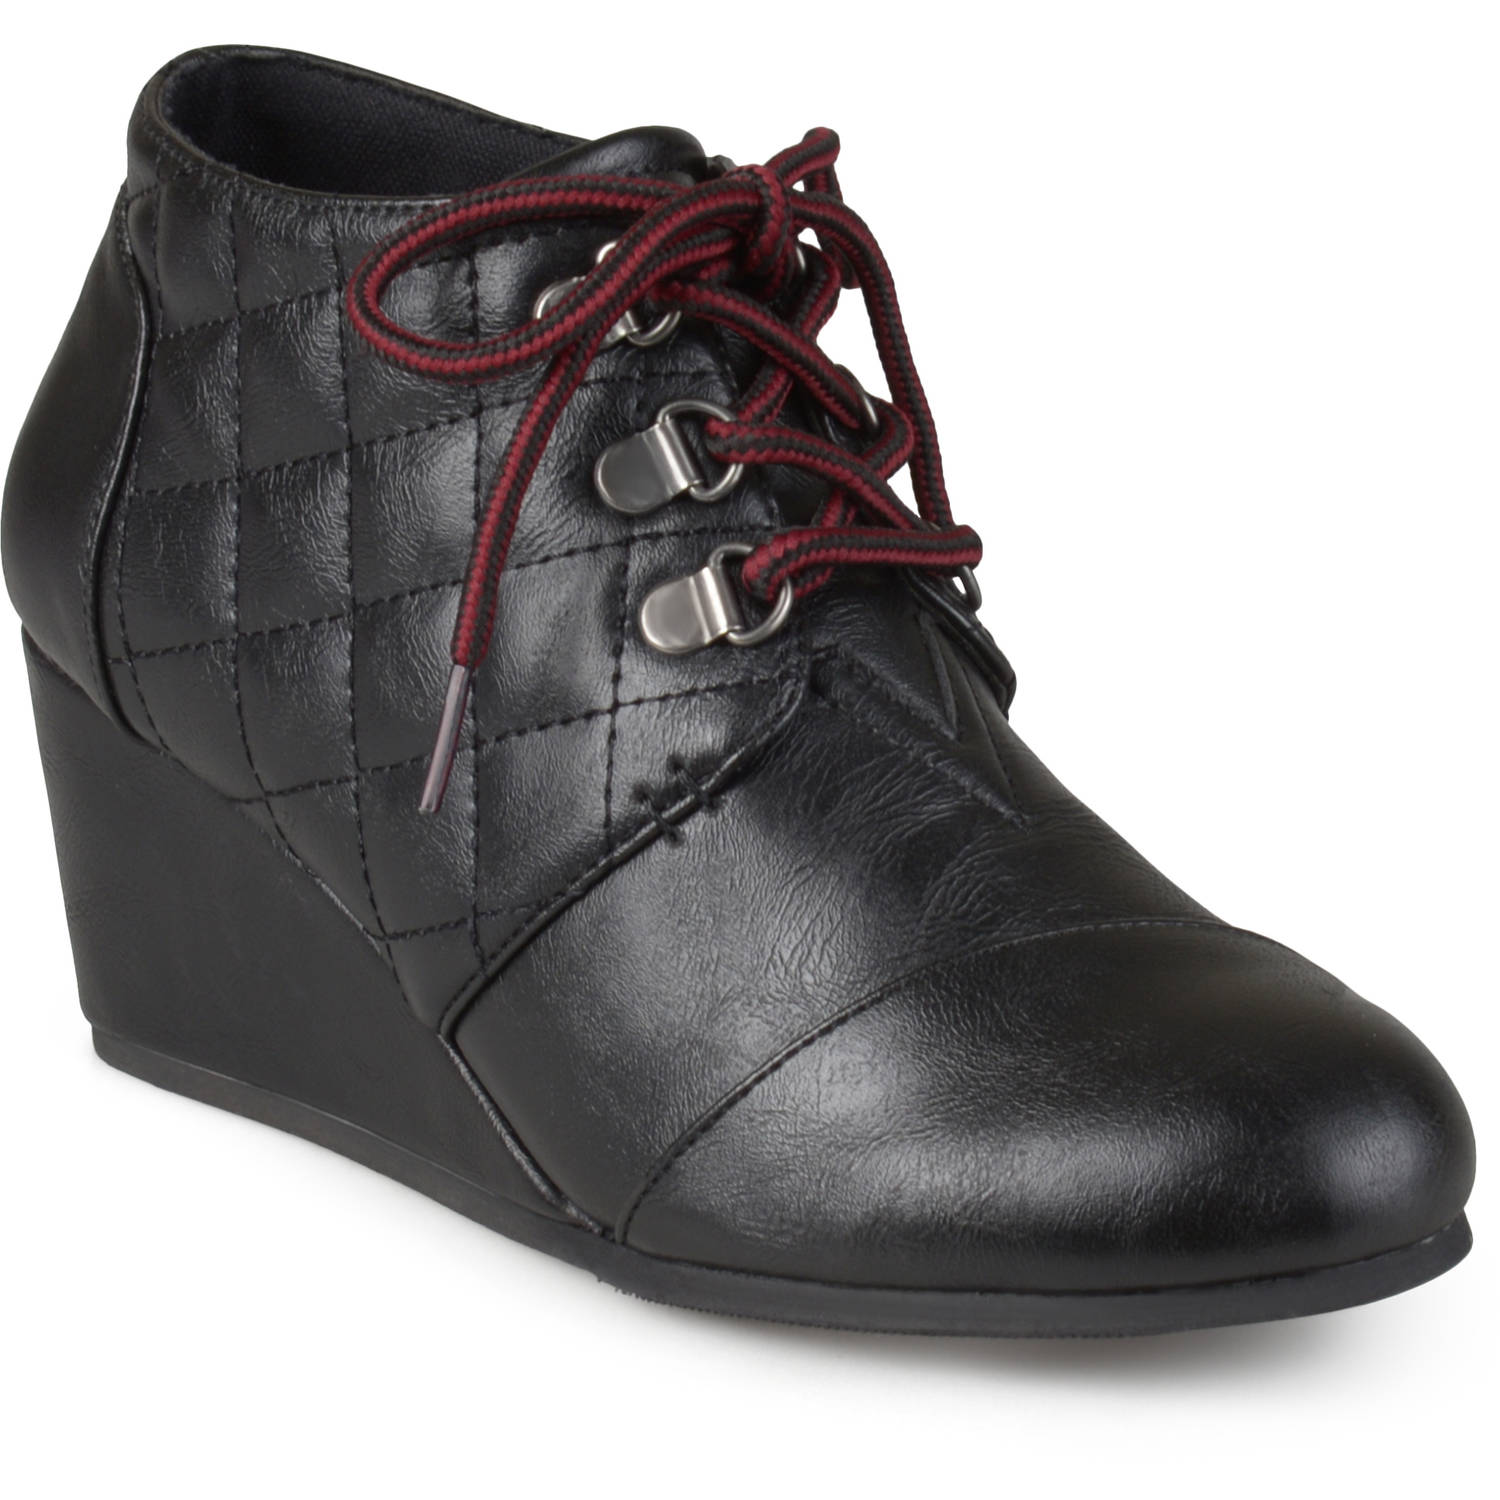 Brinley Co. Womens Lace-up Quilted Wedge Booties